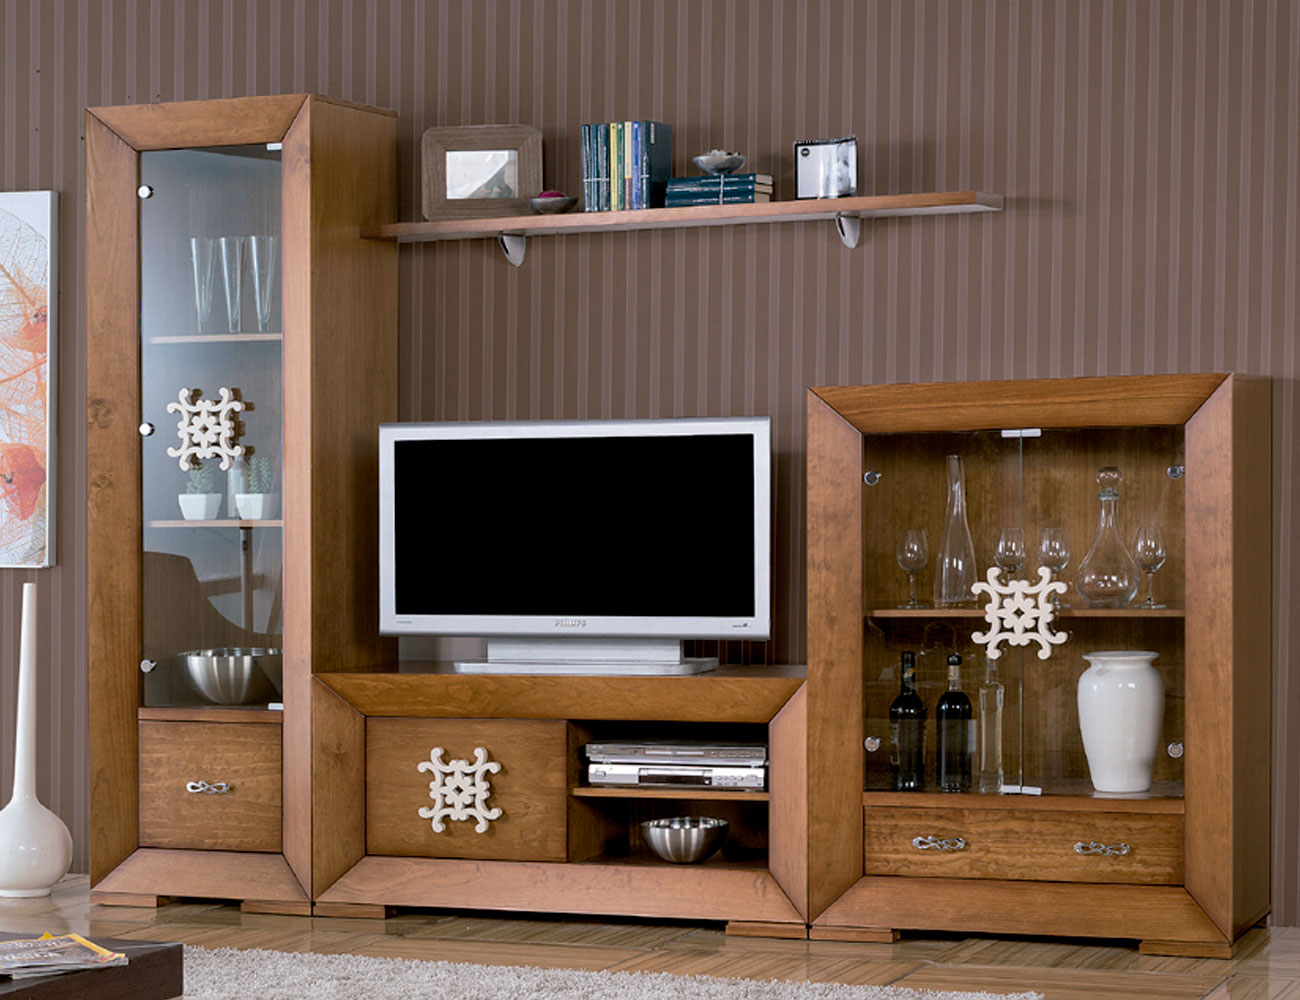 Mueble salon neoclasico color 152 tirador 63